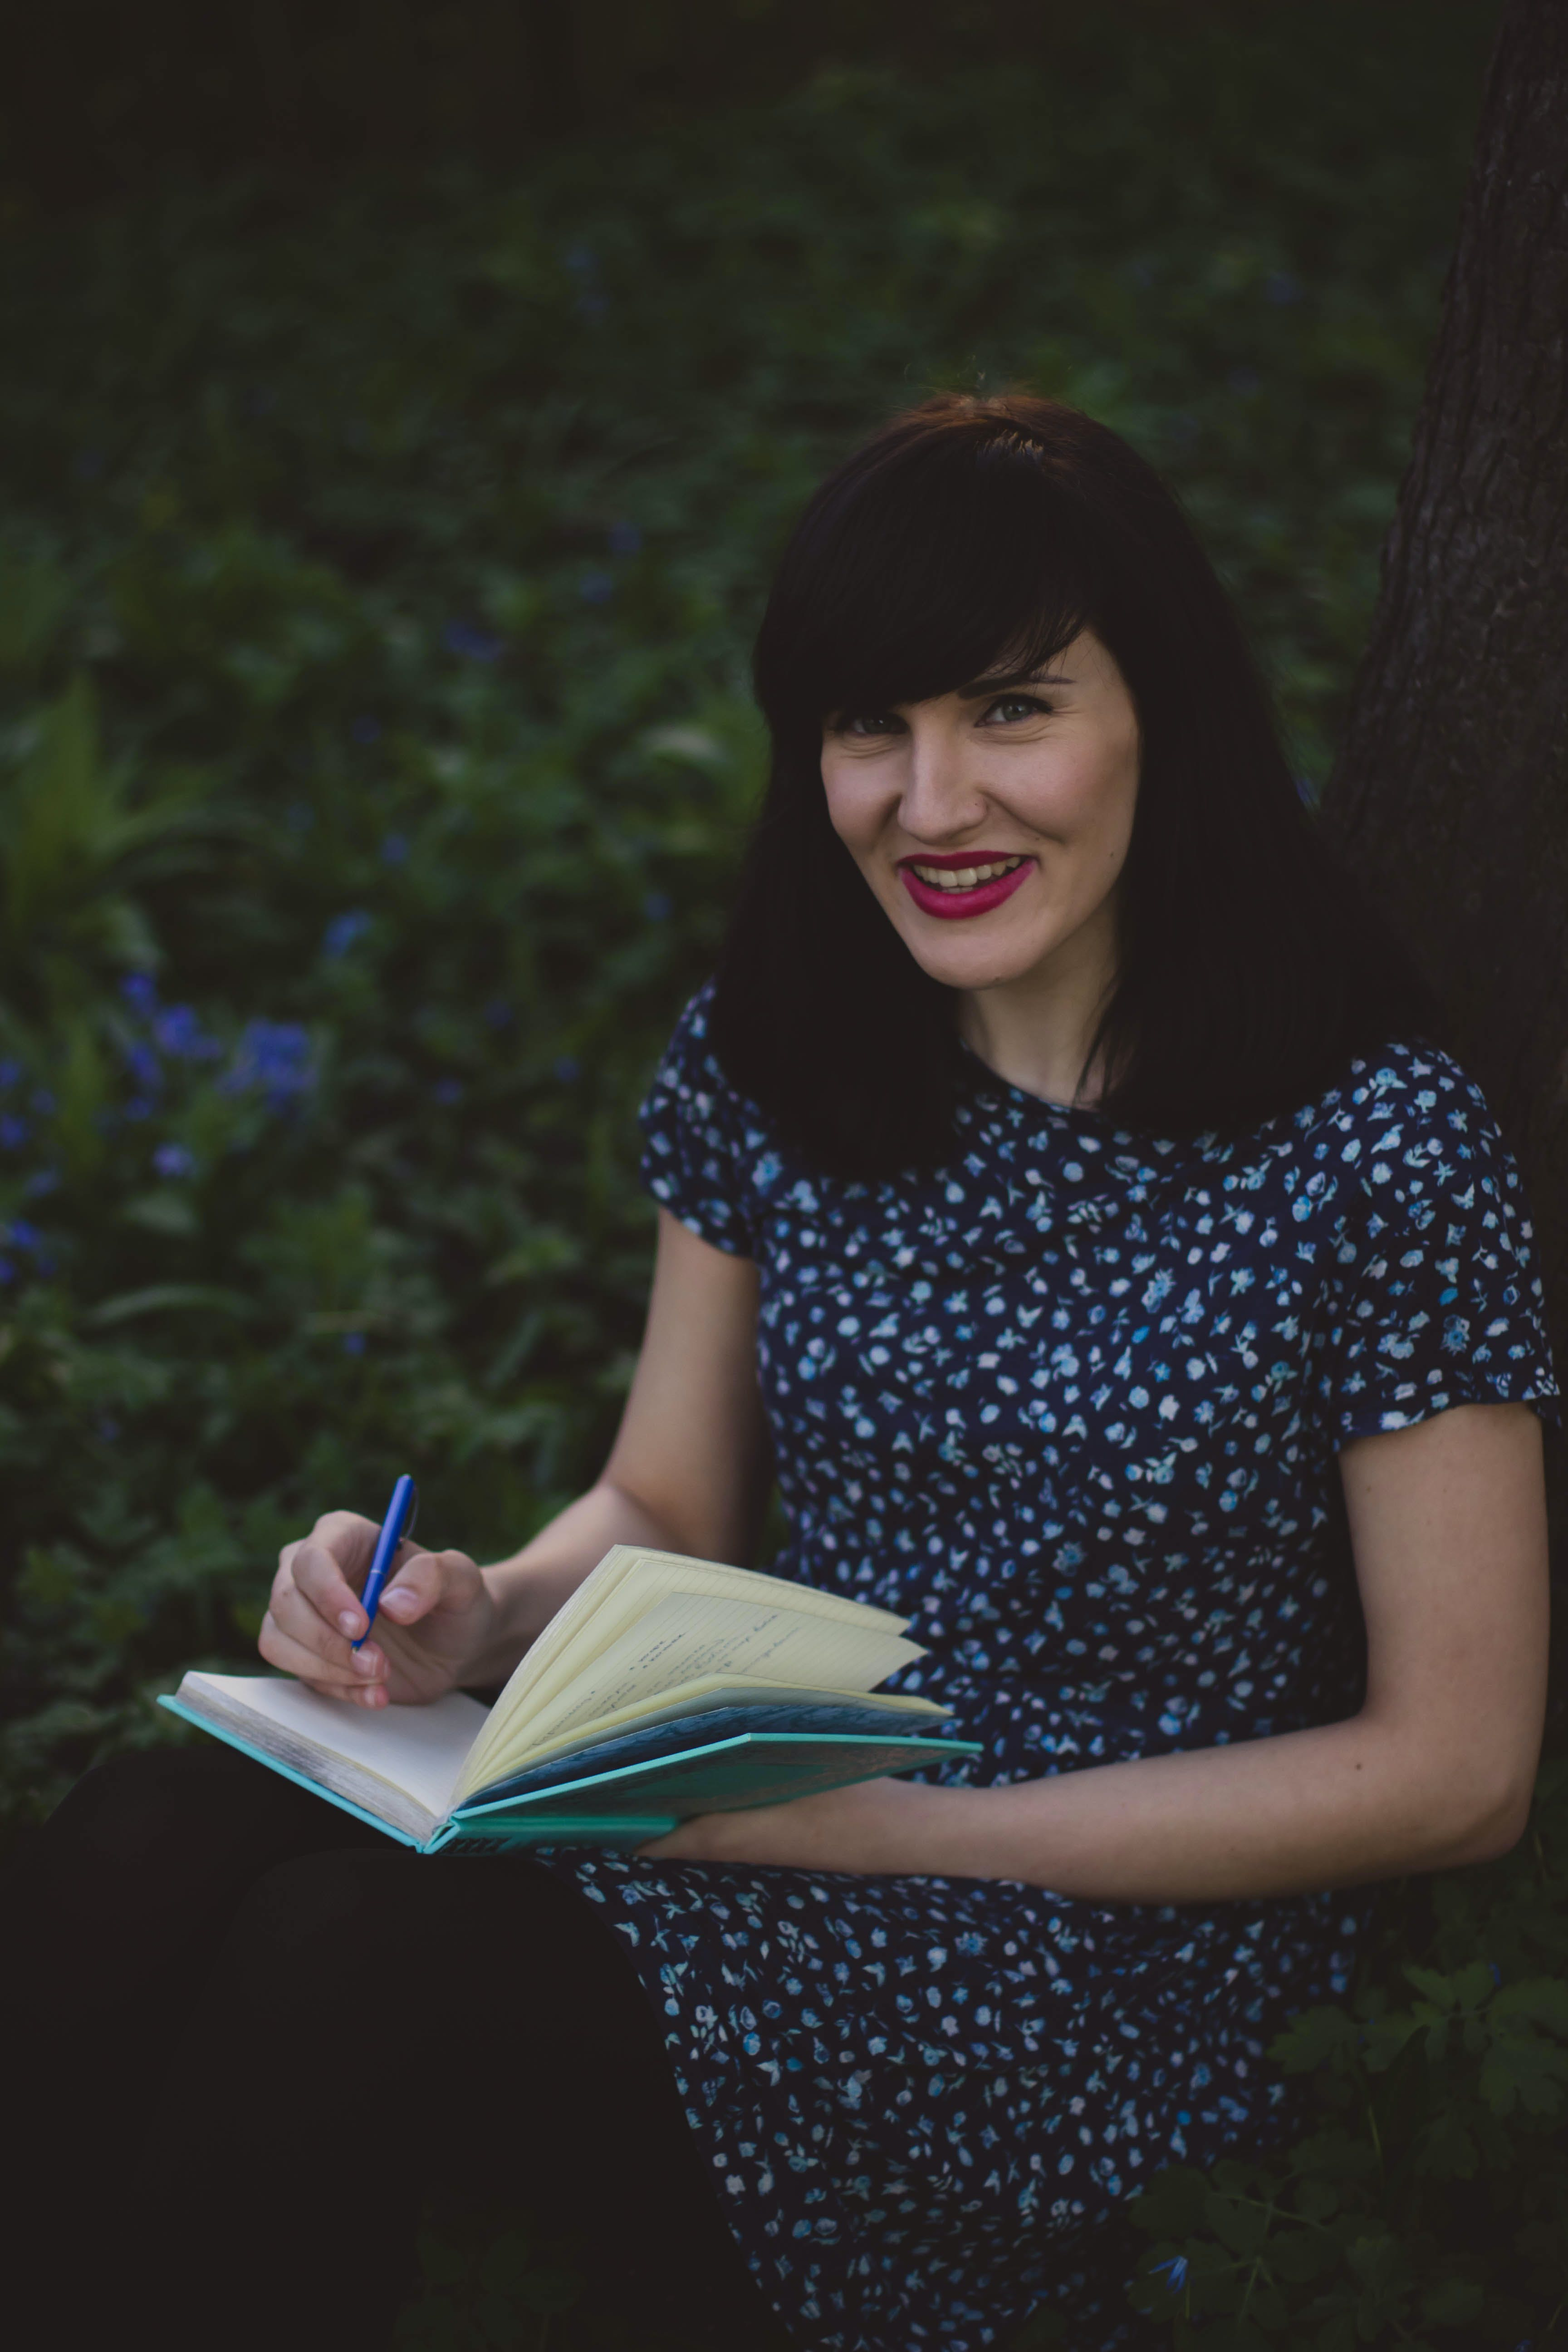 Woman in White and Blue Floral Crew Neck Short Sleeve Shirt Holding a Teal Notebook Leaning in Brown Tree Trunks